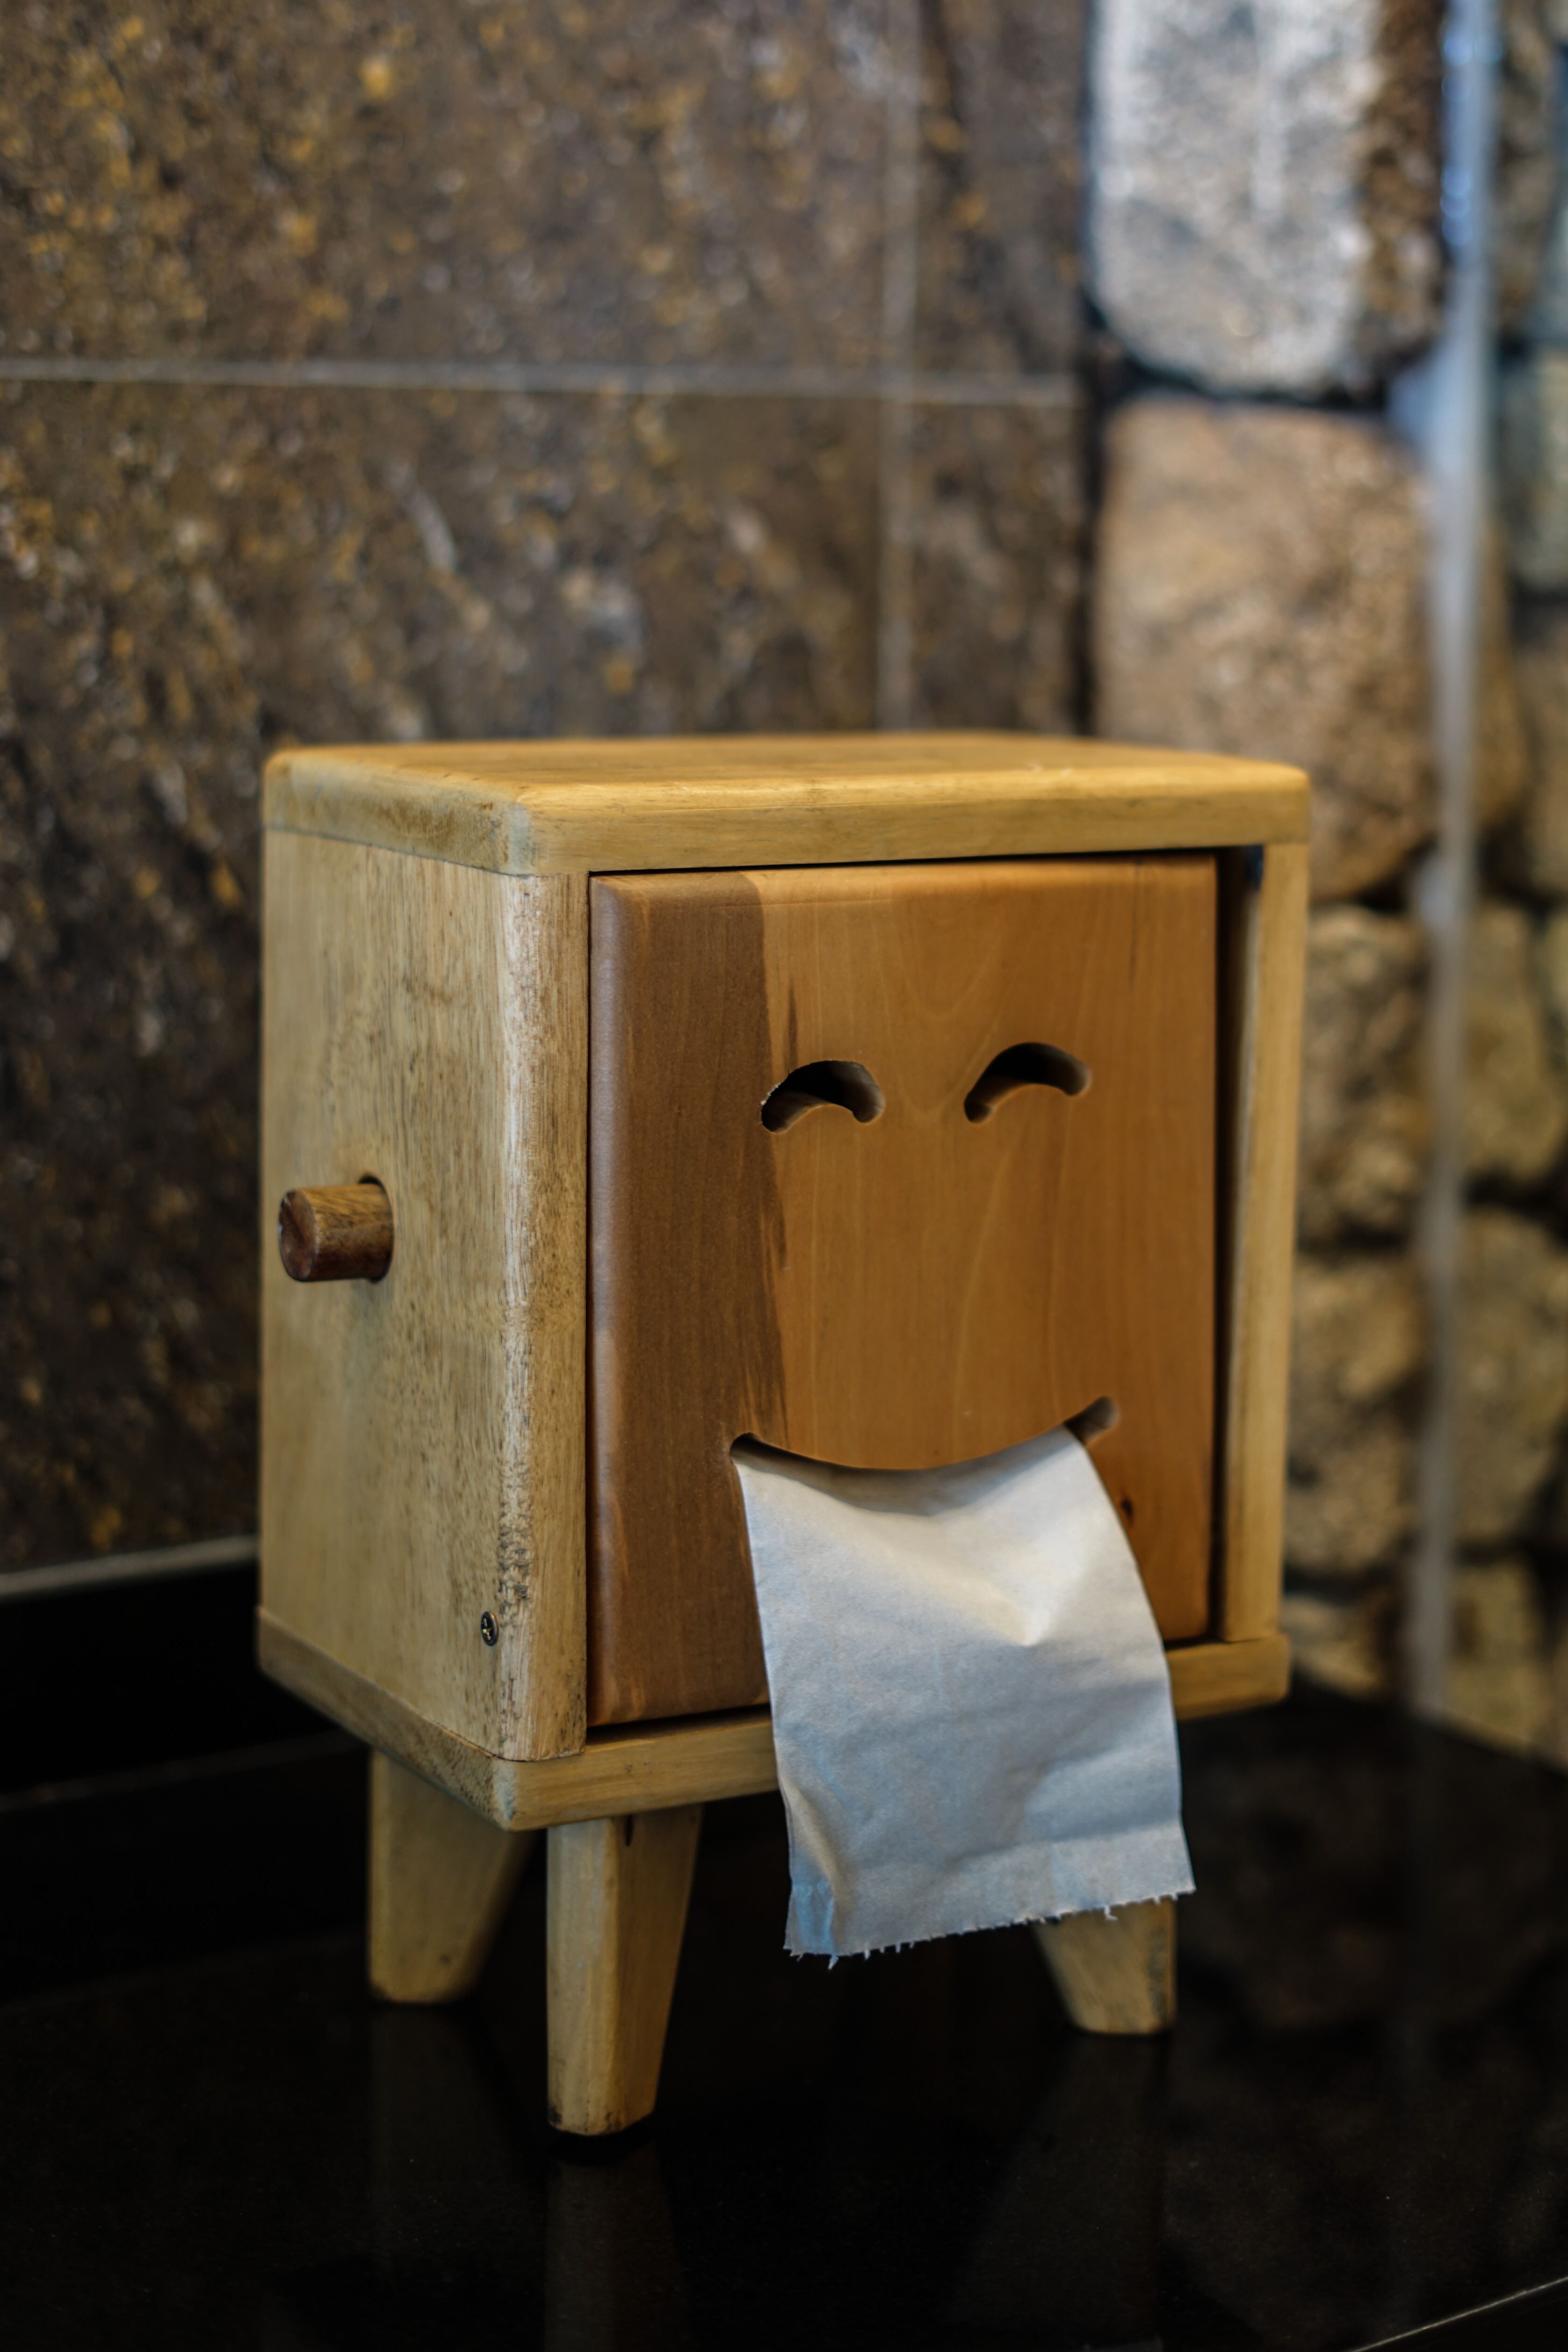 toiletpapier smiley- ontlasten